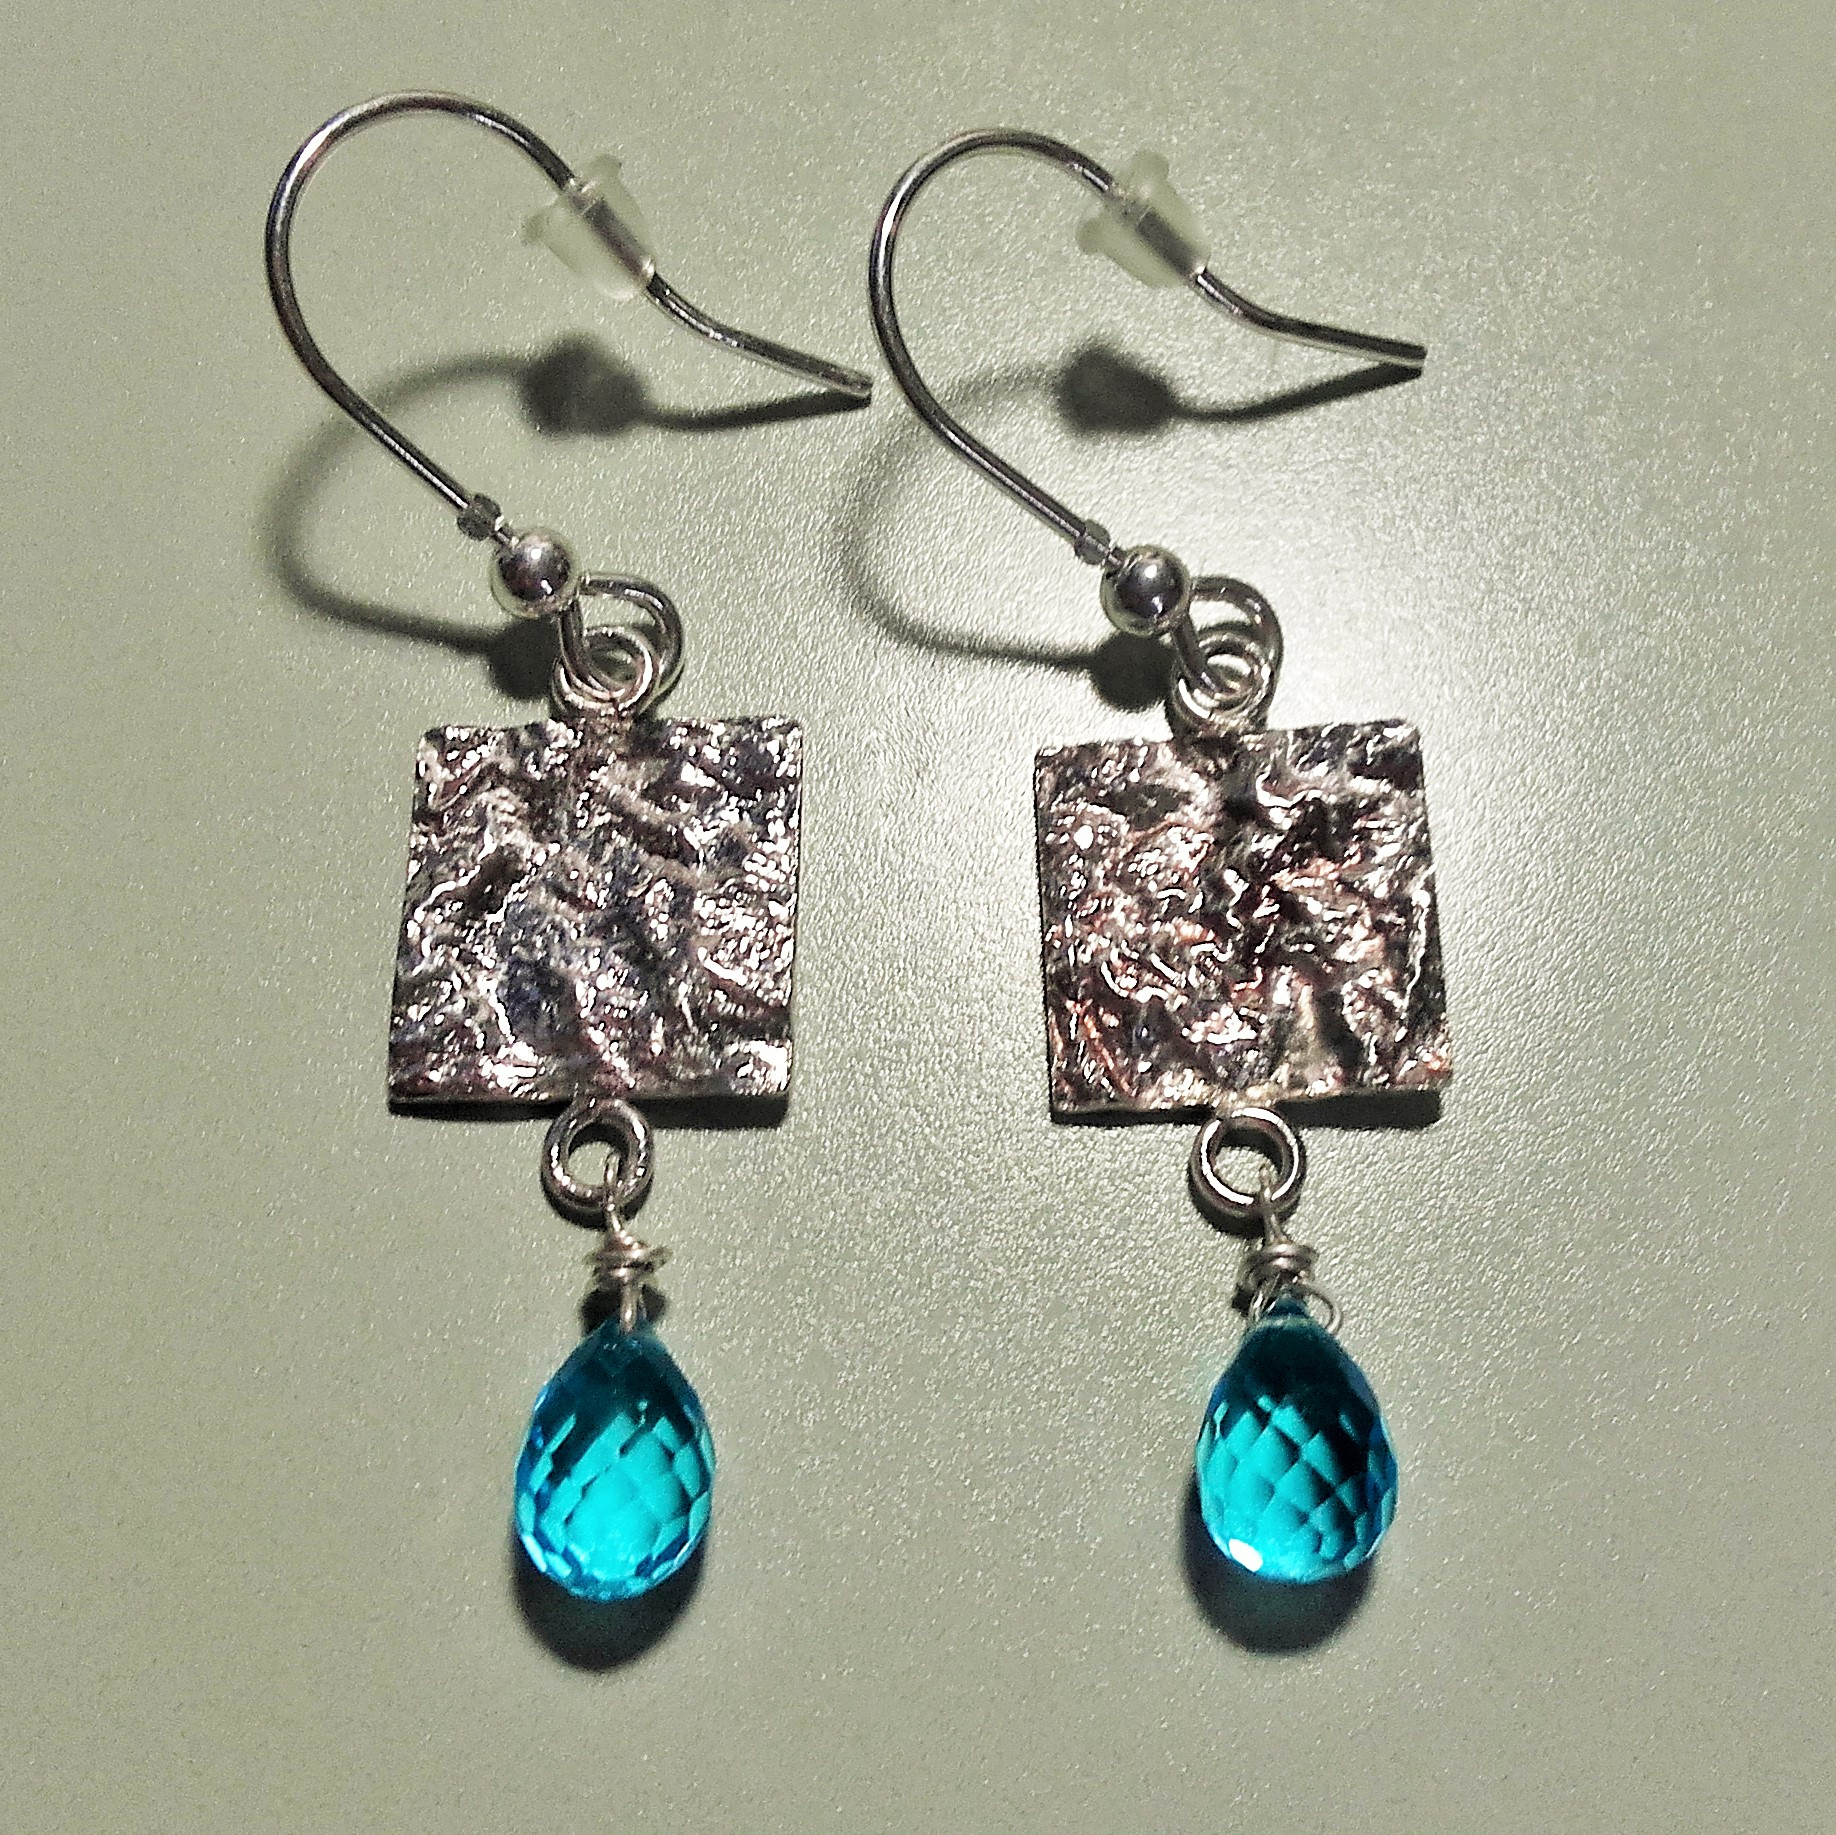 earings in reticulated silver with blue topaz drops